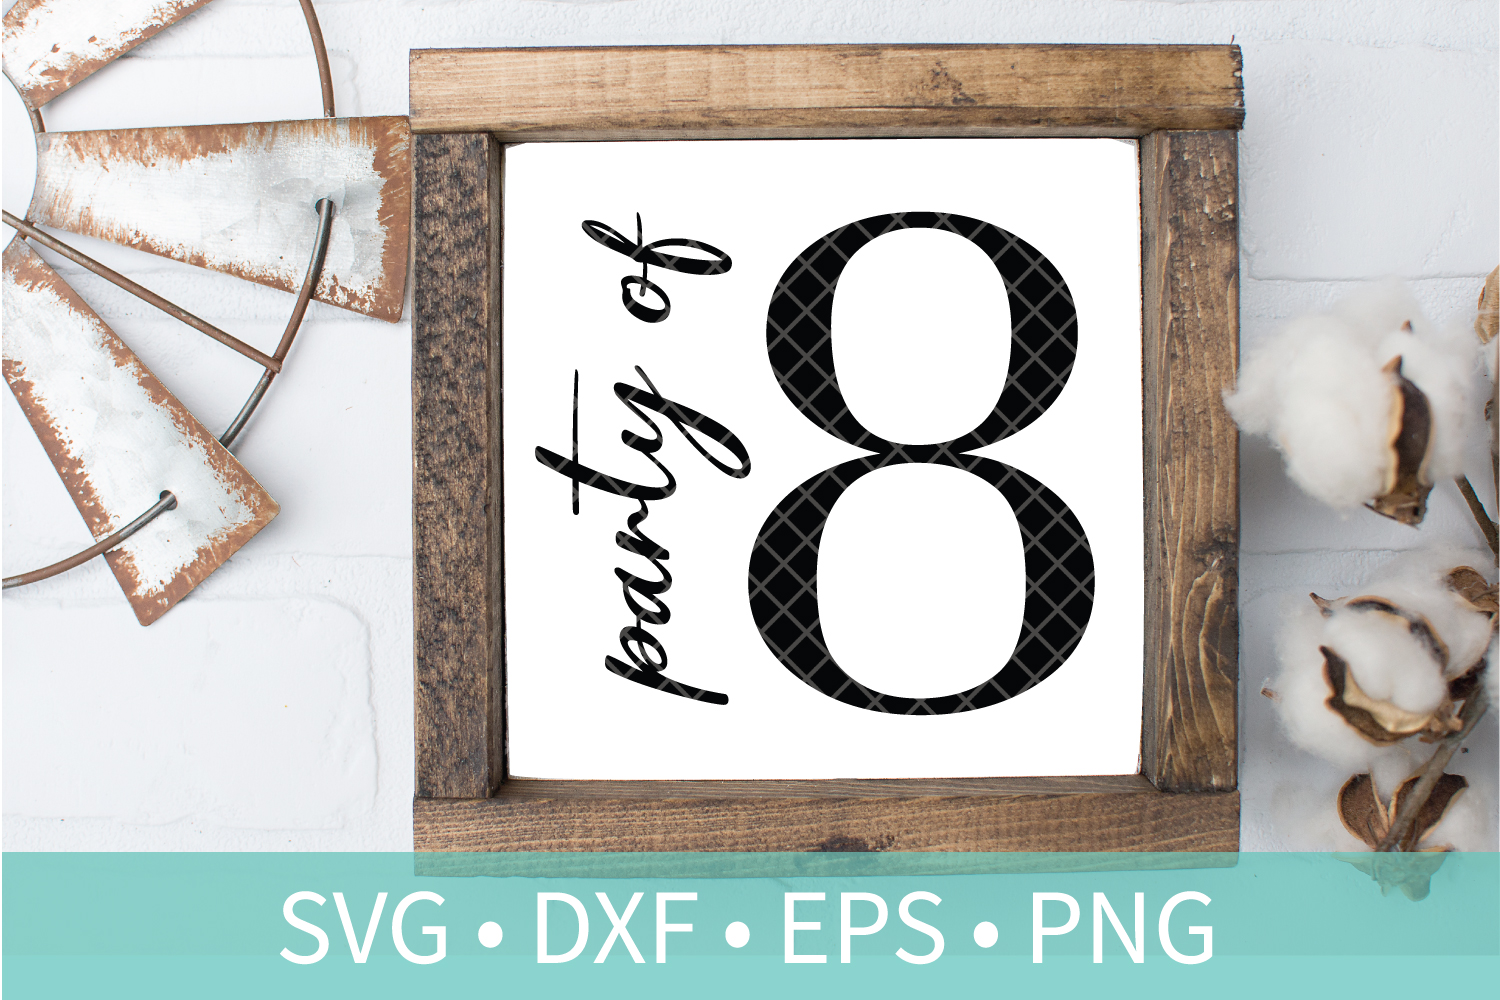 Party of 8 Family Sign SVG DXF EPS PNG Clipart Cut File example image 1